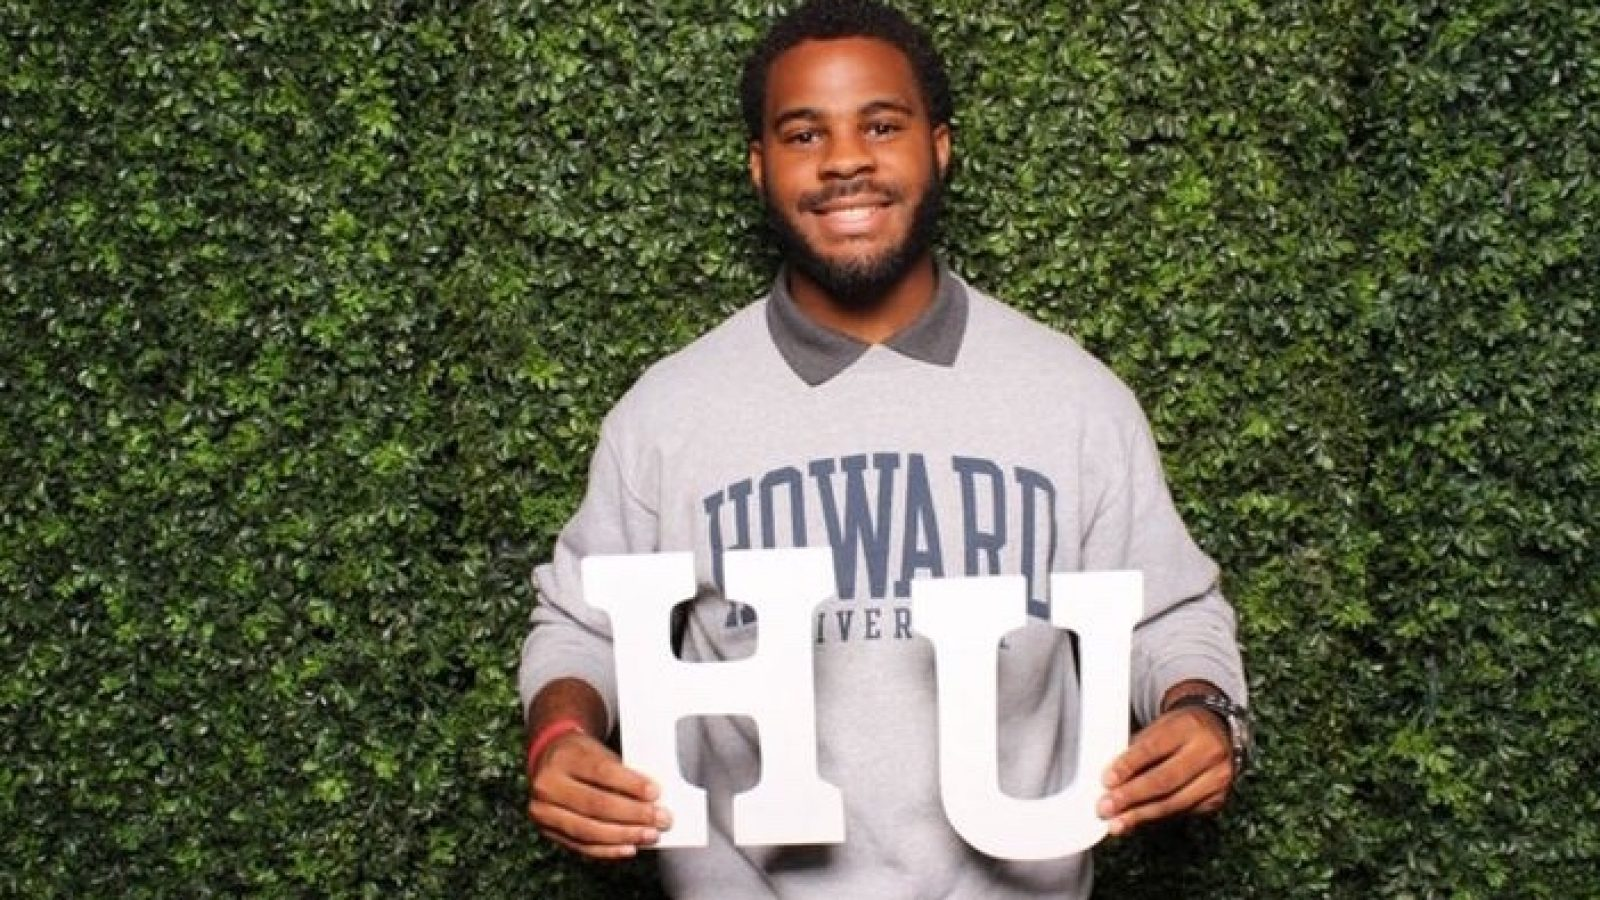 Quentin Byrd wears a Howard sweatshirt and holds